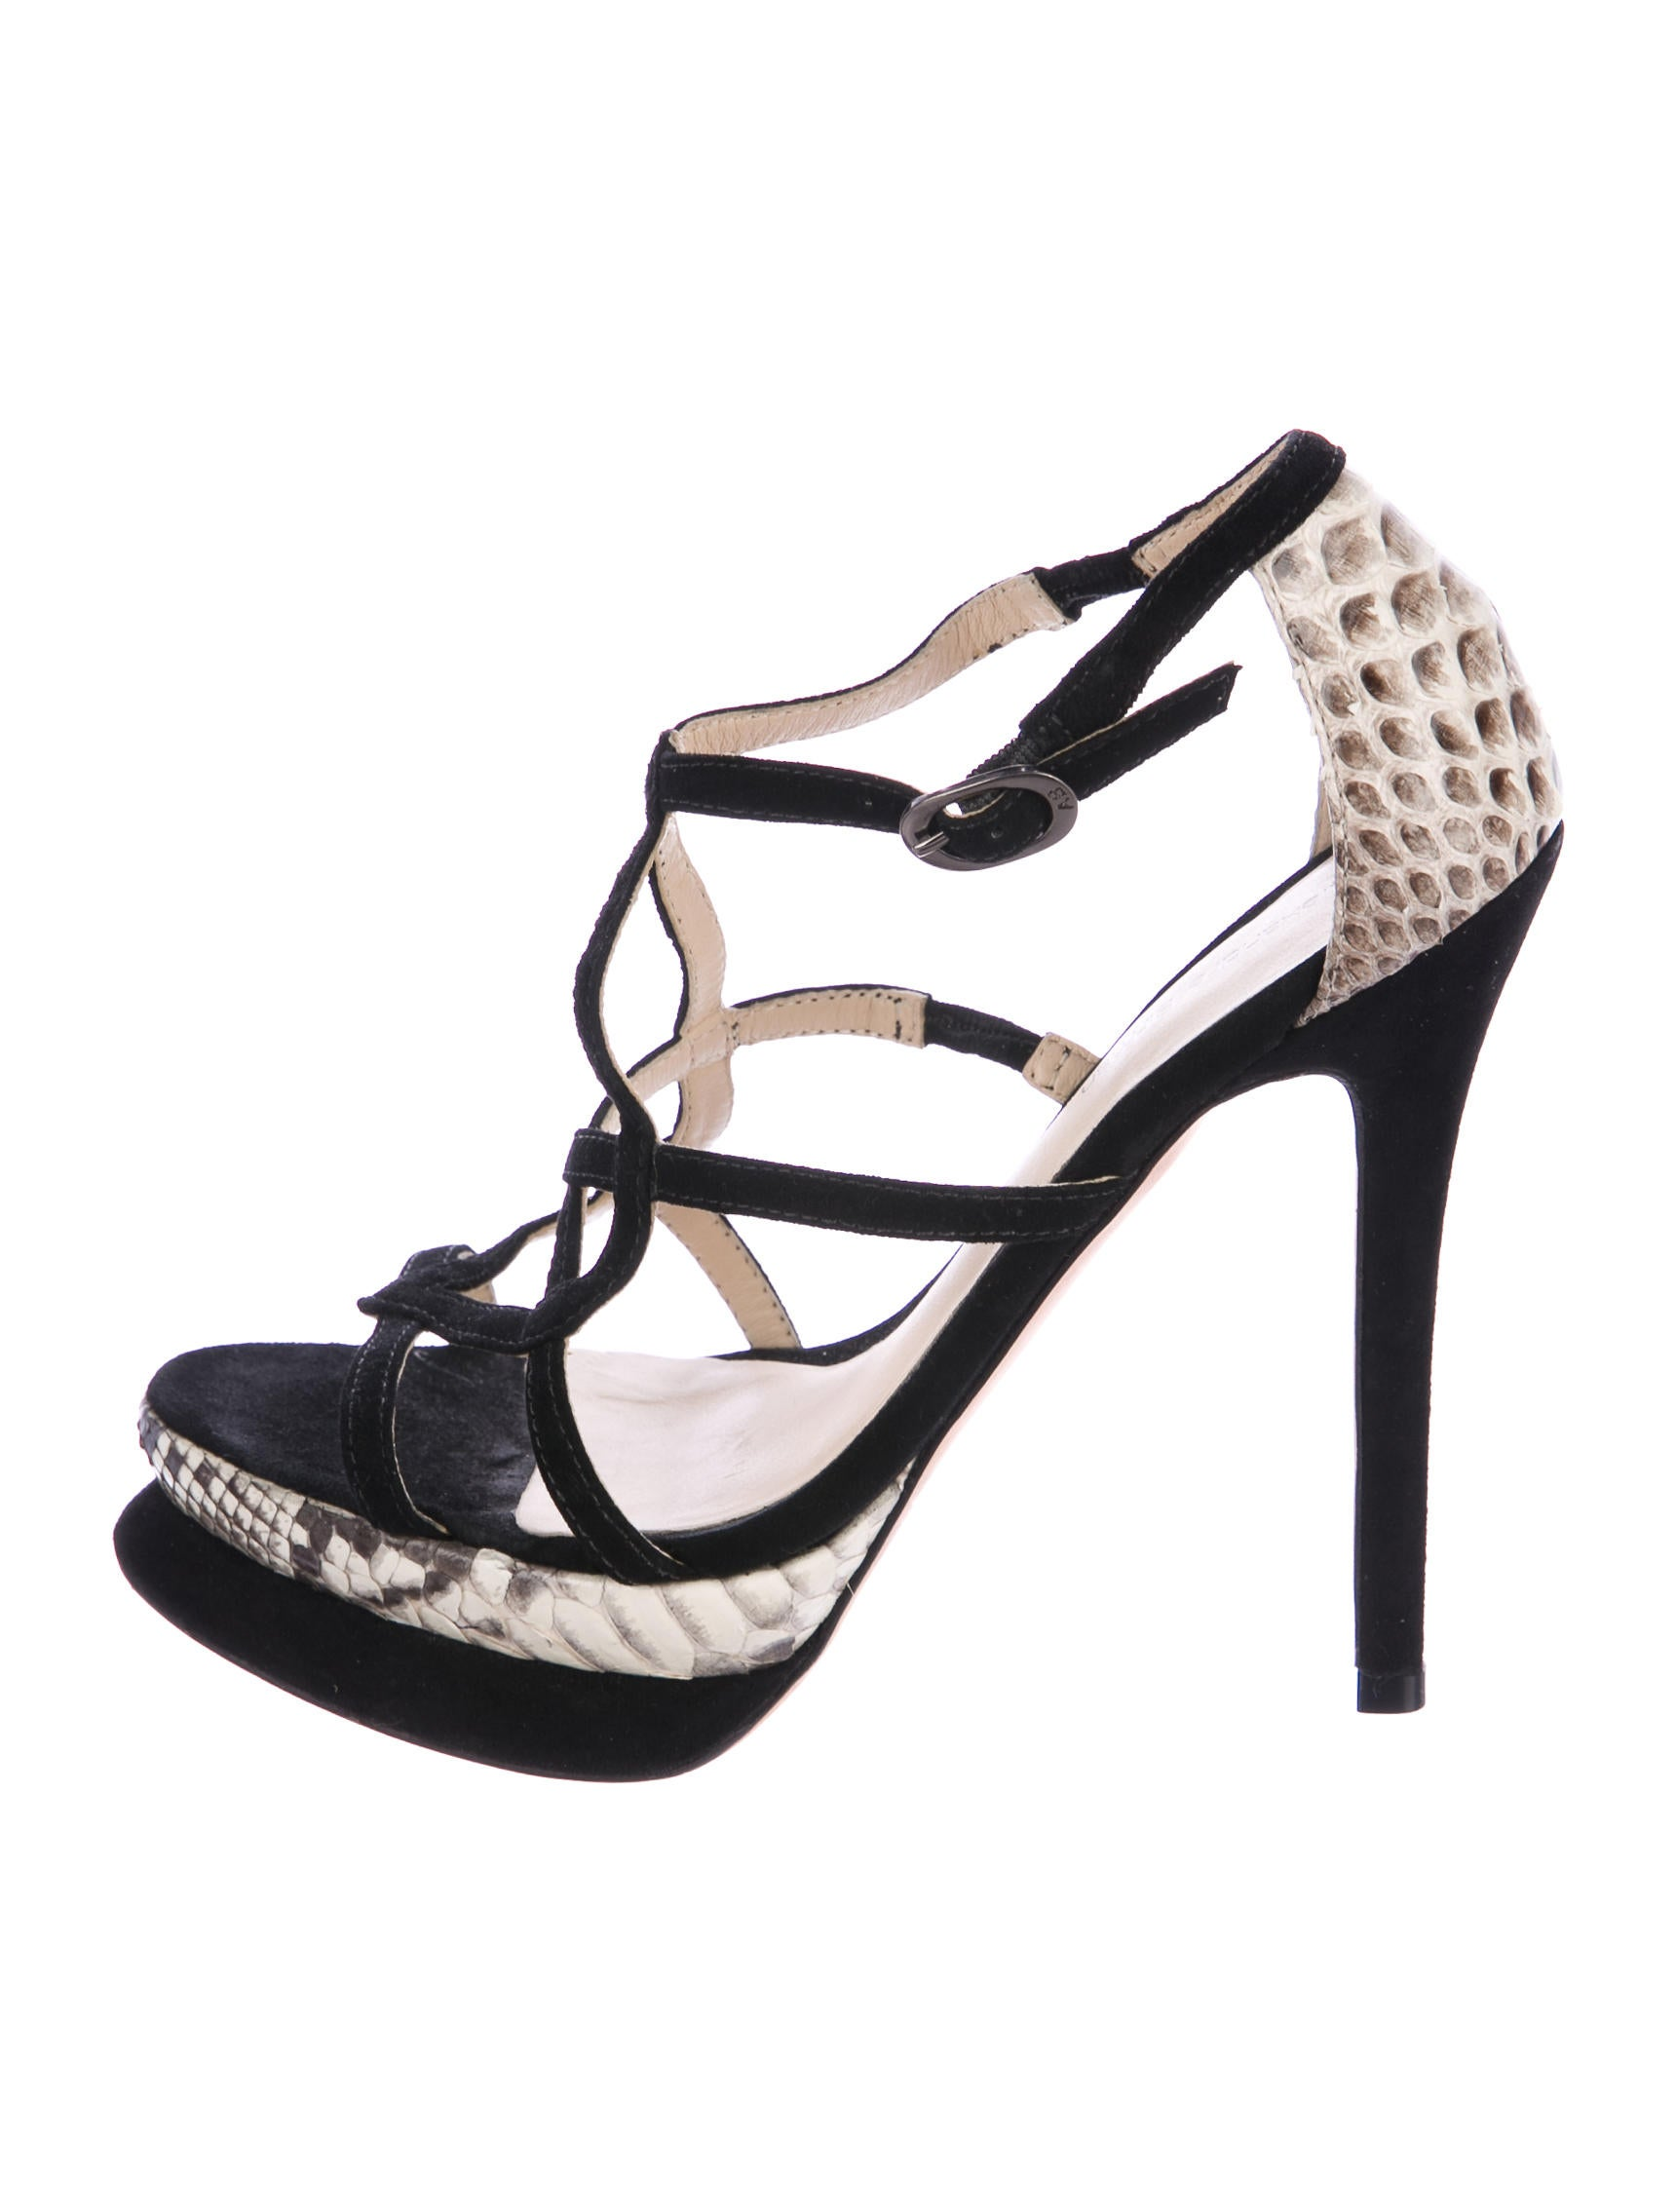 sale many kinds of Alexandre Birman Python-Trimmed Cage Sandals free shipping discount UuWhE8LxA2